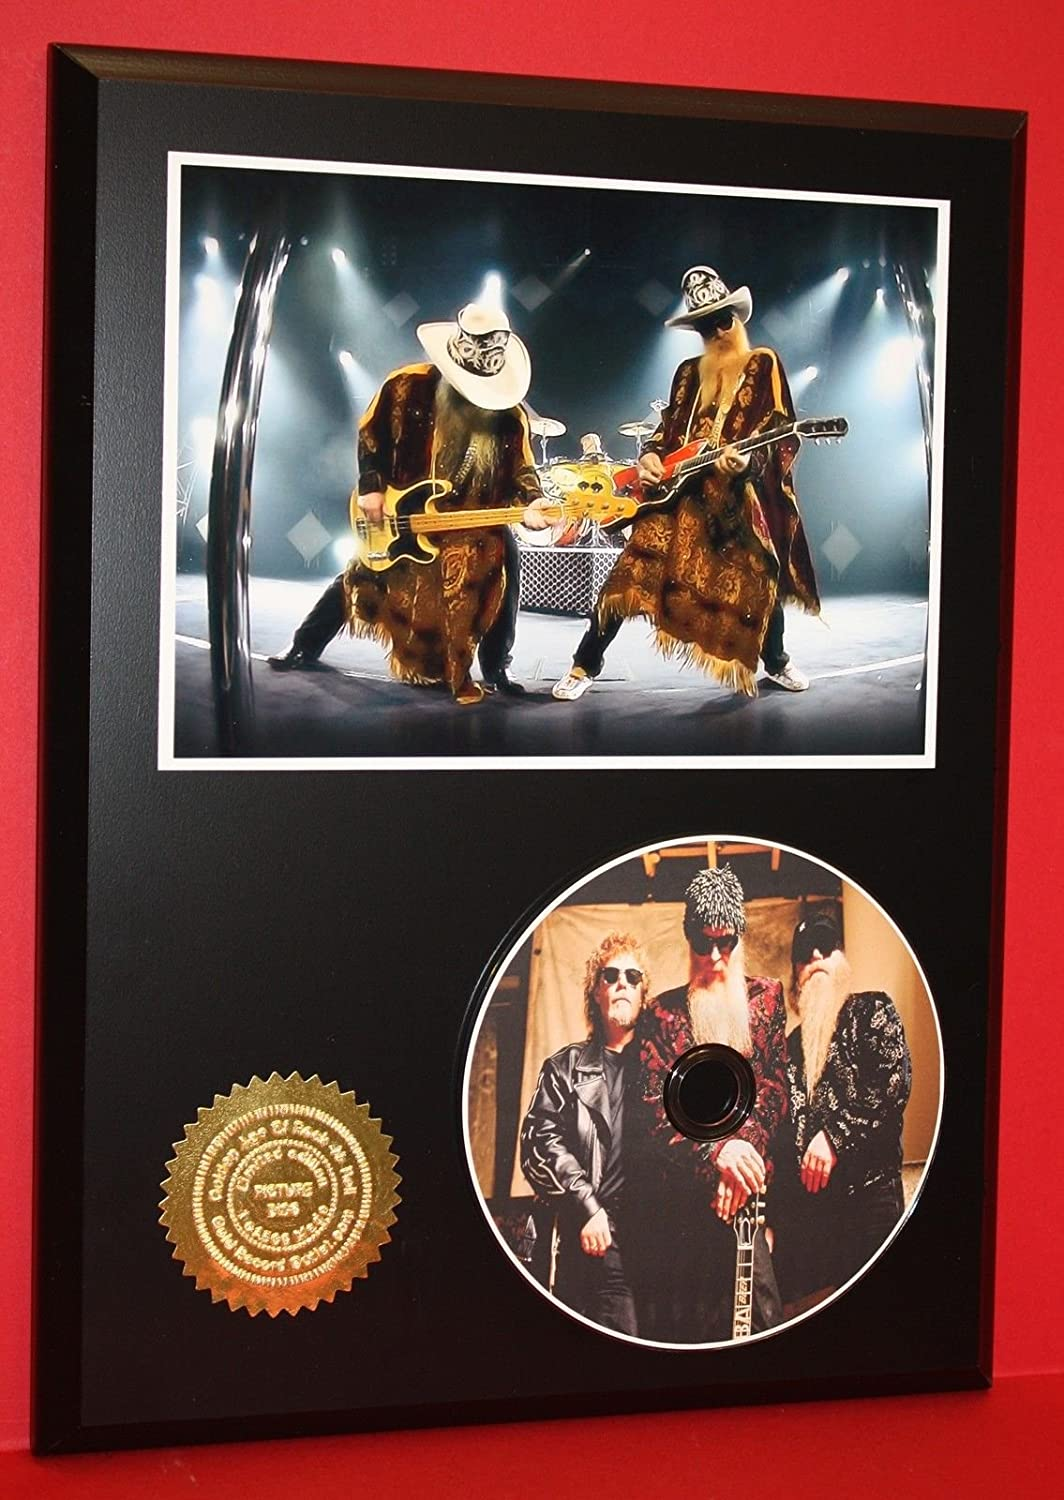 ZZ Top Limited Edition Picture Cd Disc Rare Collectible Music Display